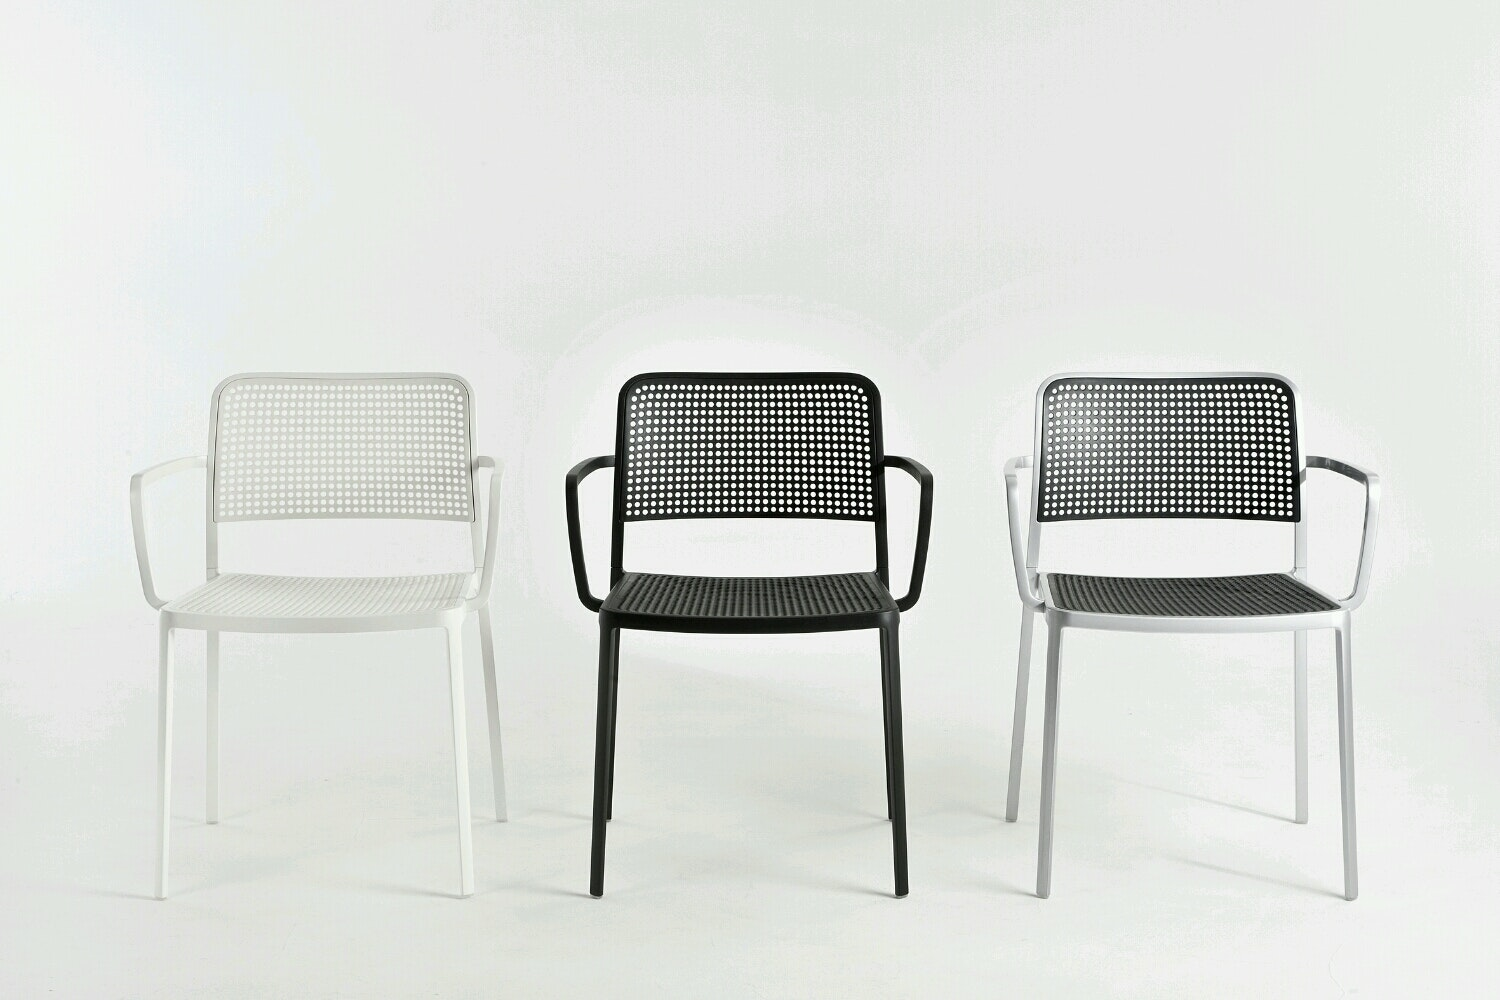 Audrey Chair with Arms by Piero Lissoni for Kartell